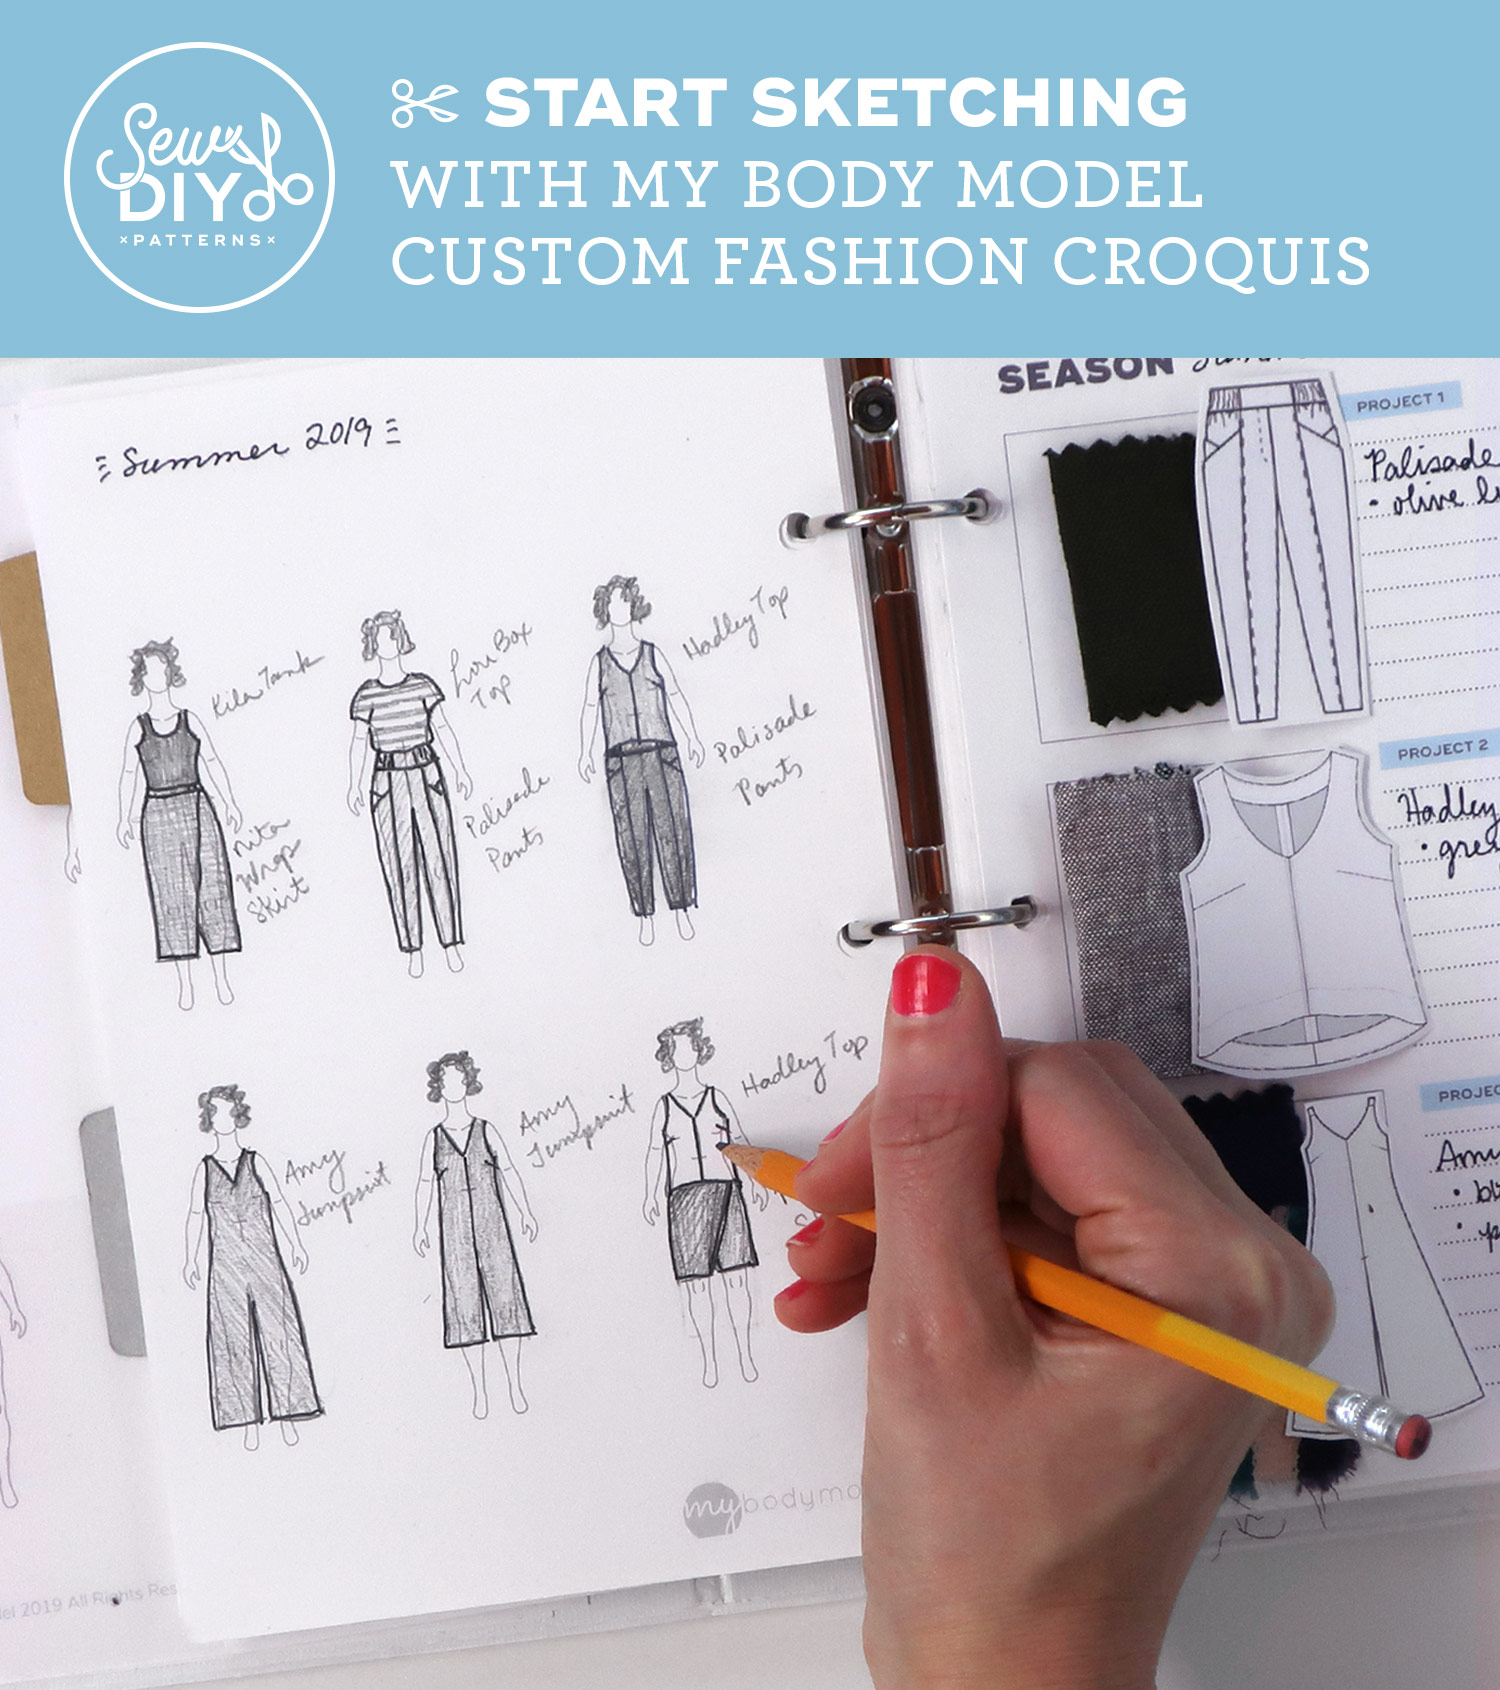 Start Sketching with My Body Model Custom Fashion Croquis